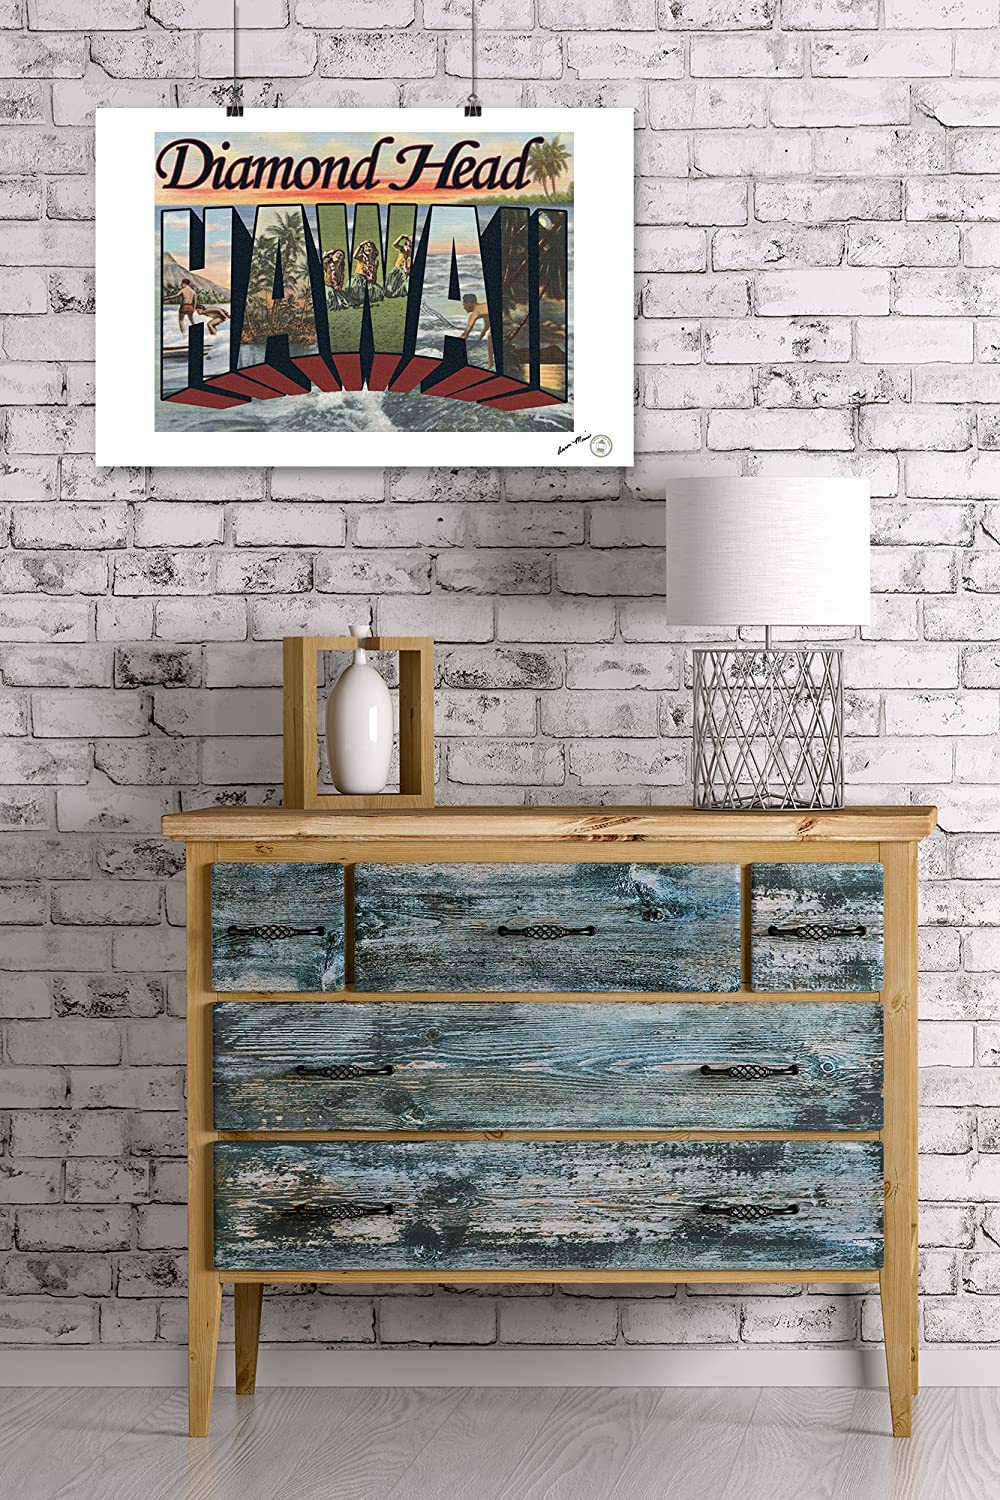 Diamond Head Hawaii 36x54 Giclee Gallery Print, Wall Decor Travel Poster Large Letter Scenes